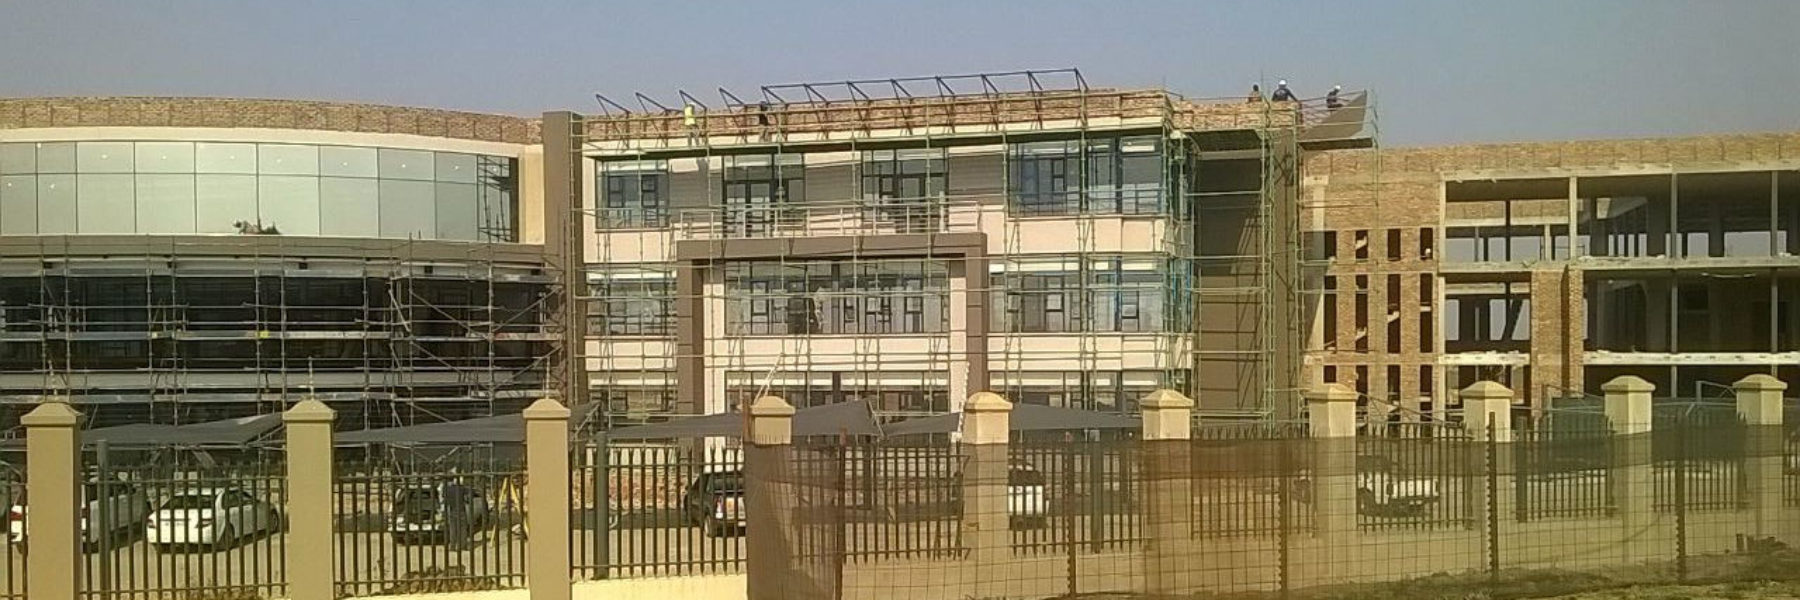 Gibela Scaffolding - Scaffolding and Formwork Sales and Hire Johannesburg South Africa